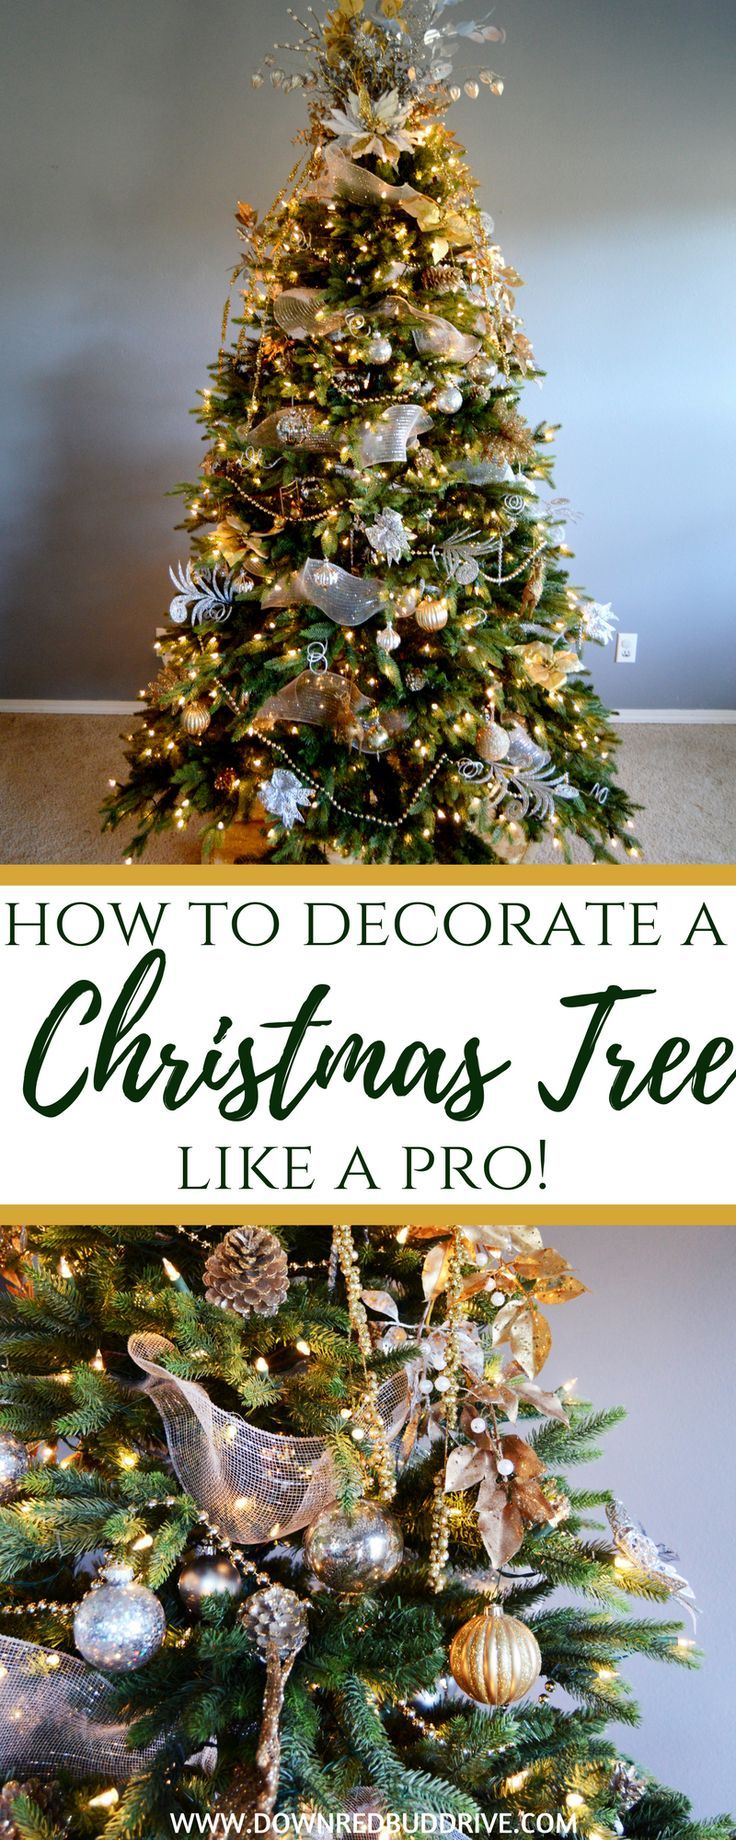 how to decorate a christmas tree like a pro christmas trees how to decorate a christmas tree christmas tree decorating chri